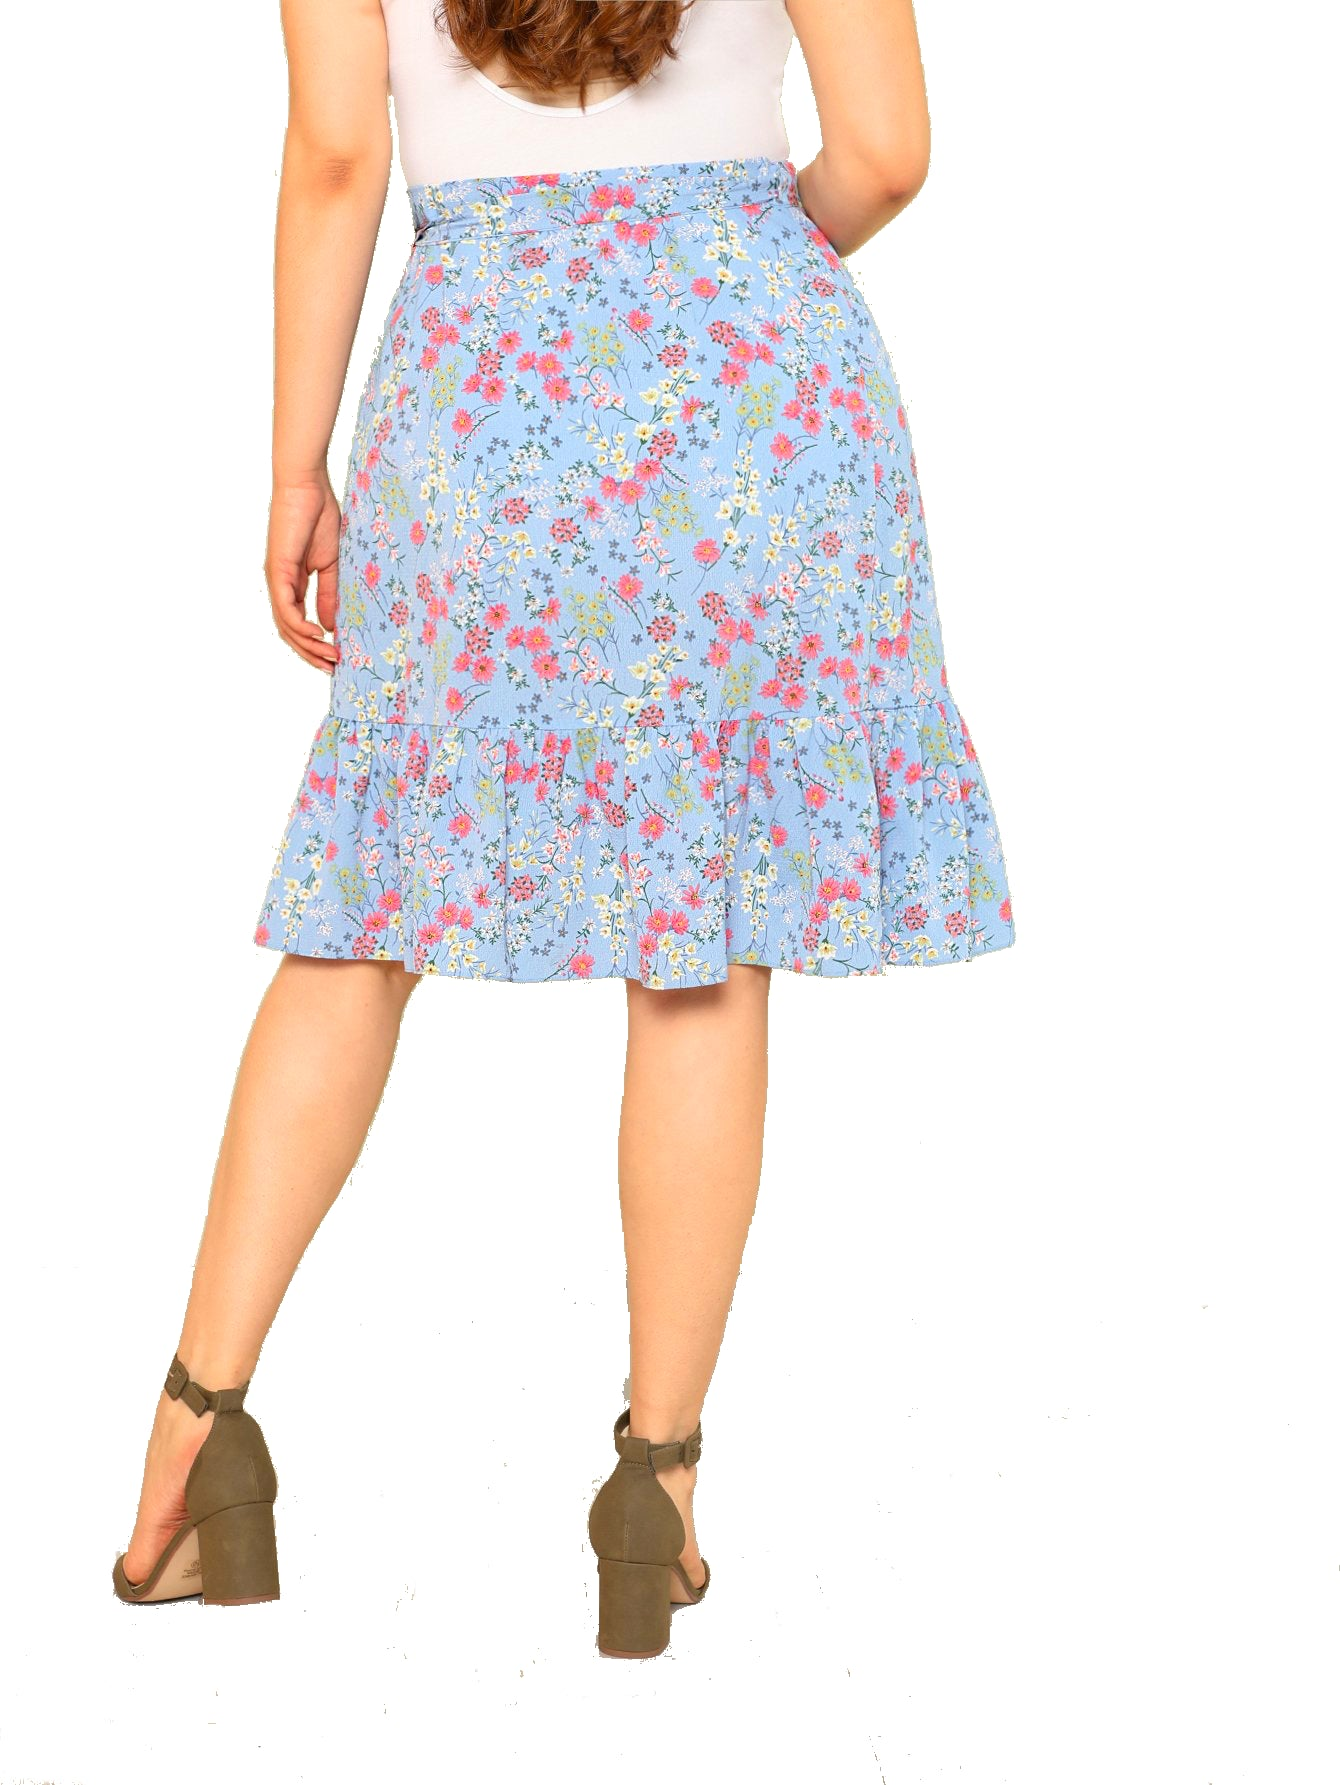 plus size Skirt L / AUS 16 / Blue Serena Floral Skirt - CLEARANCE